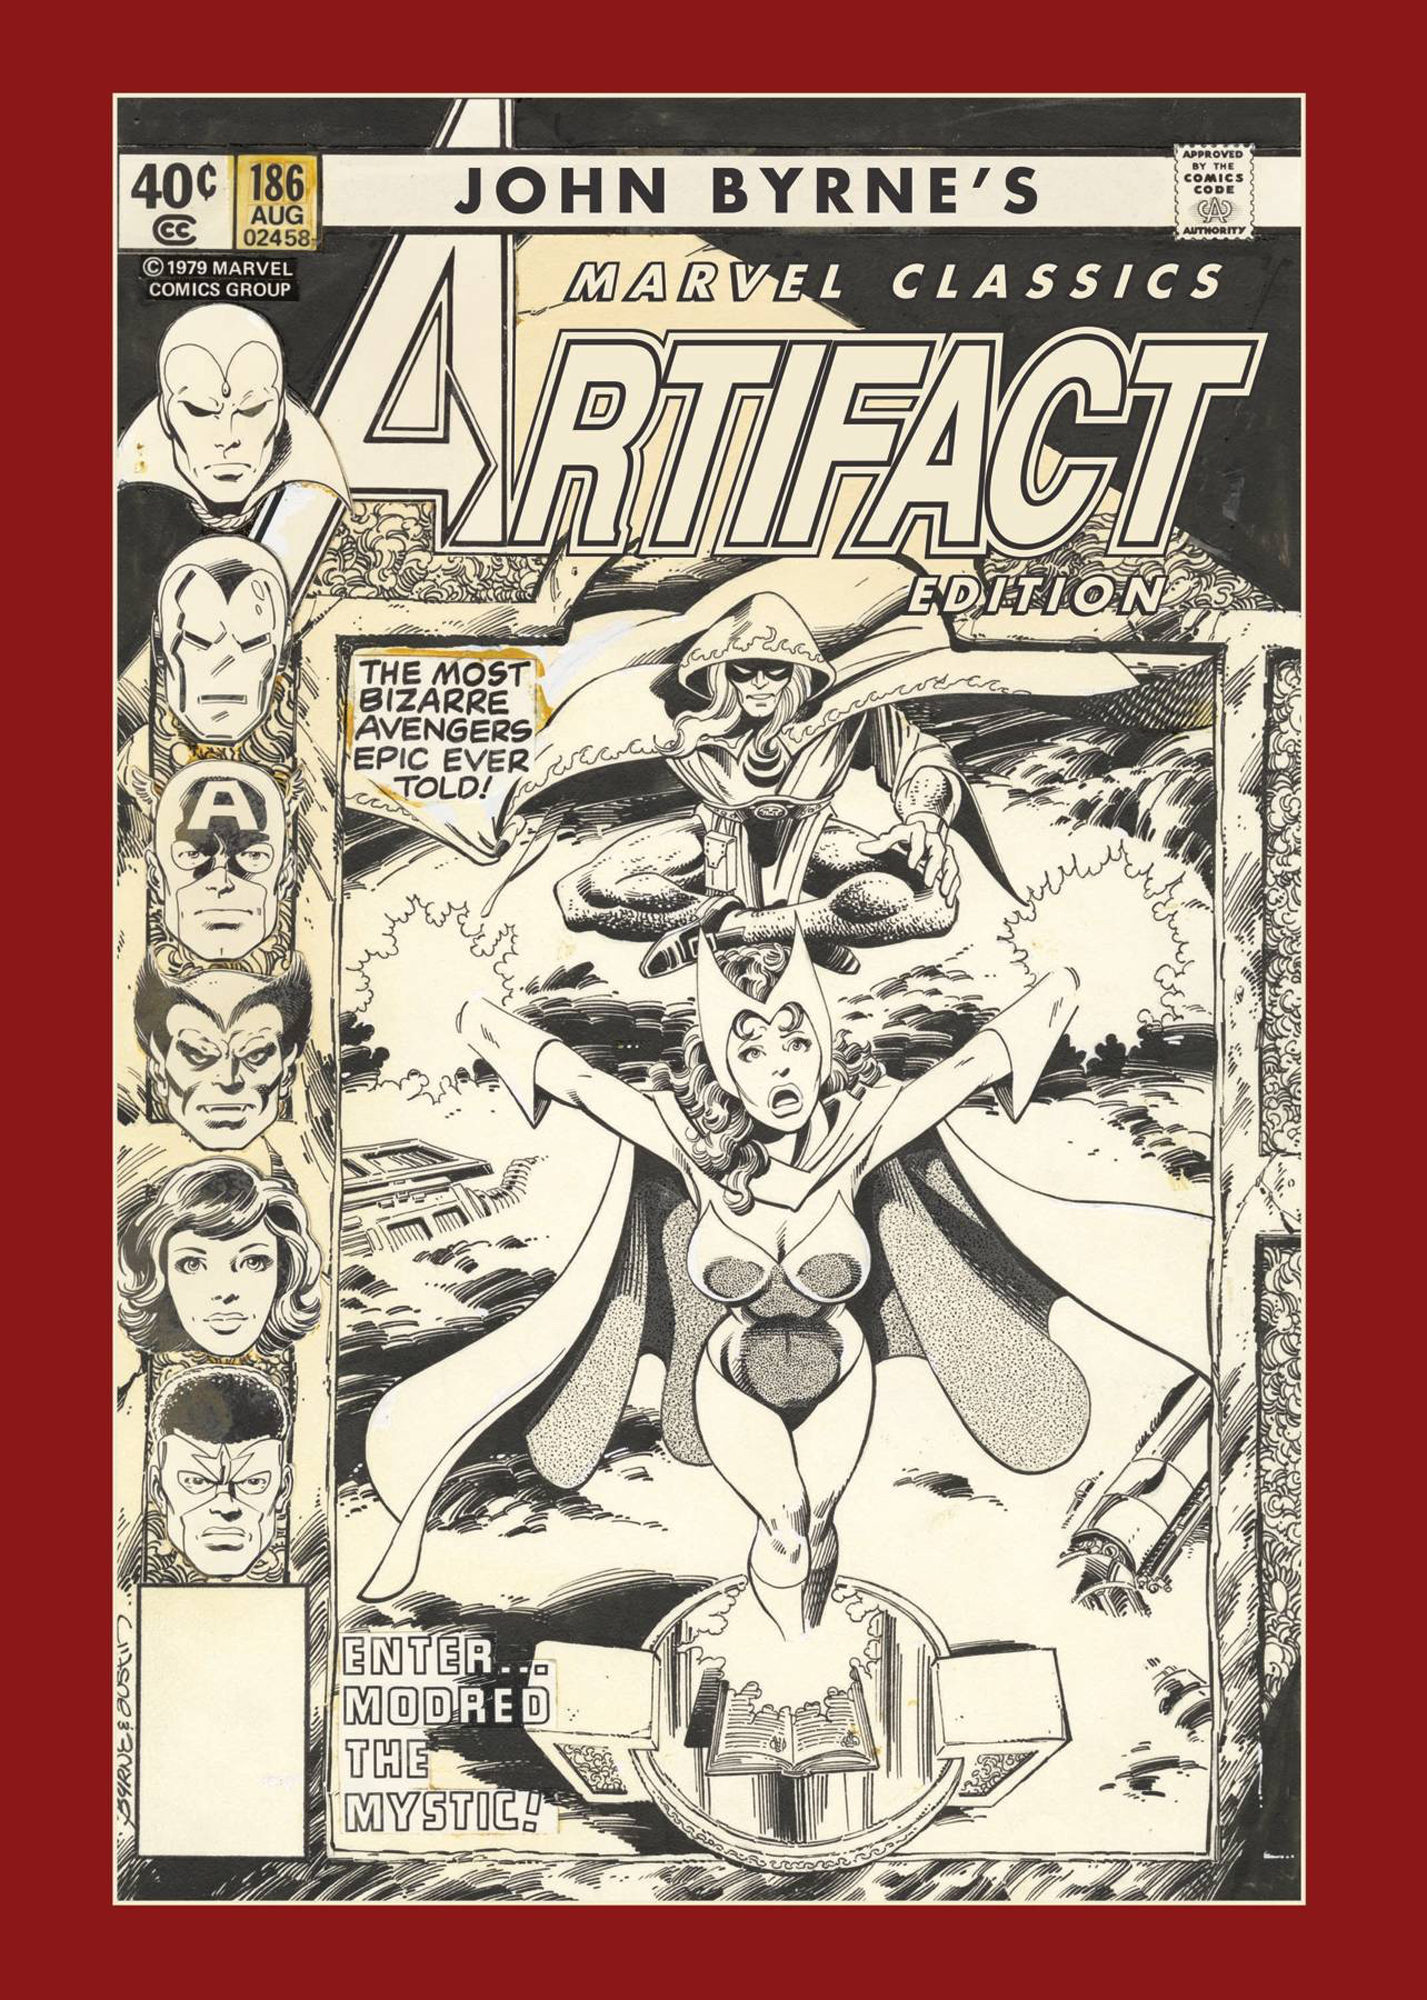 Image result for john byrne marvel classics artifact edition